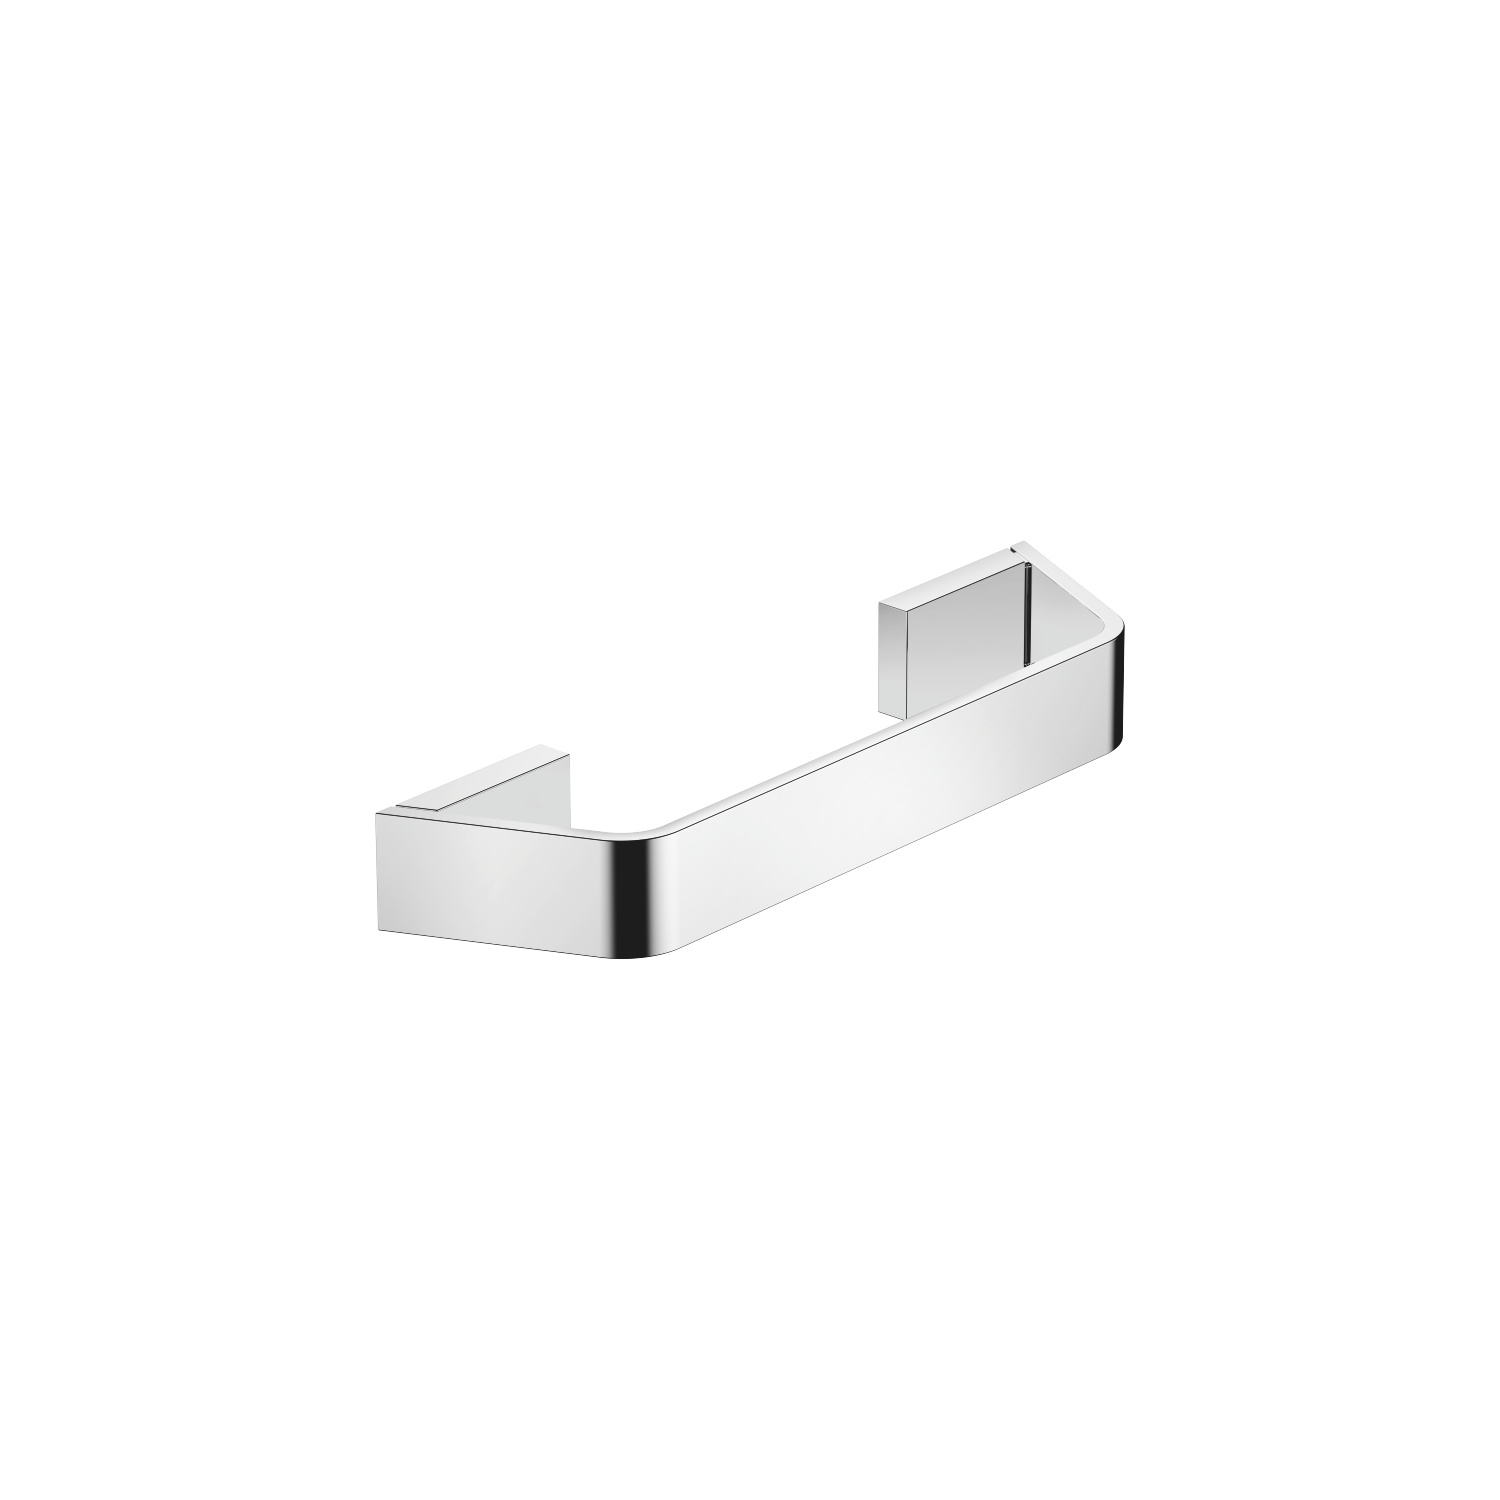 Bath grip - polished chrome